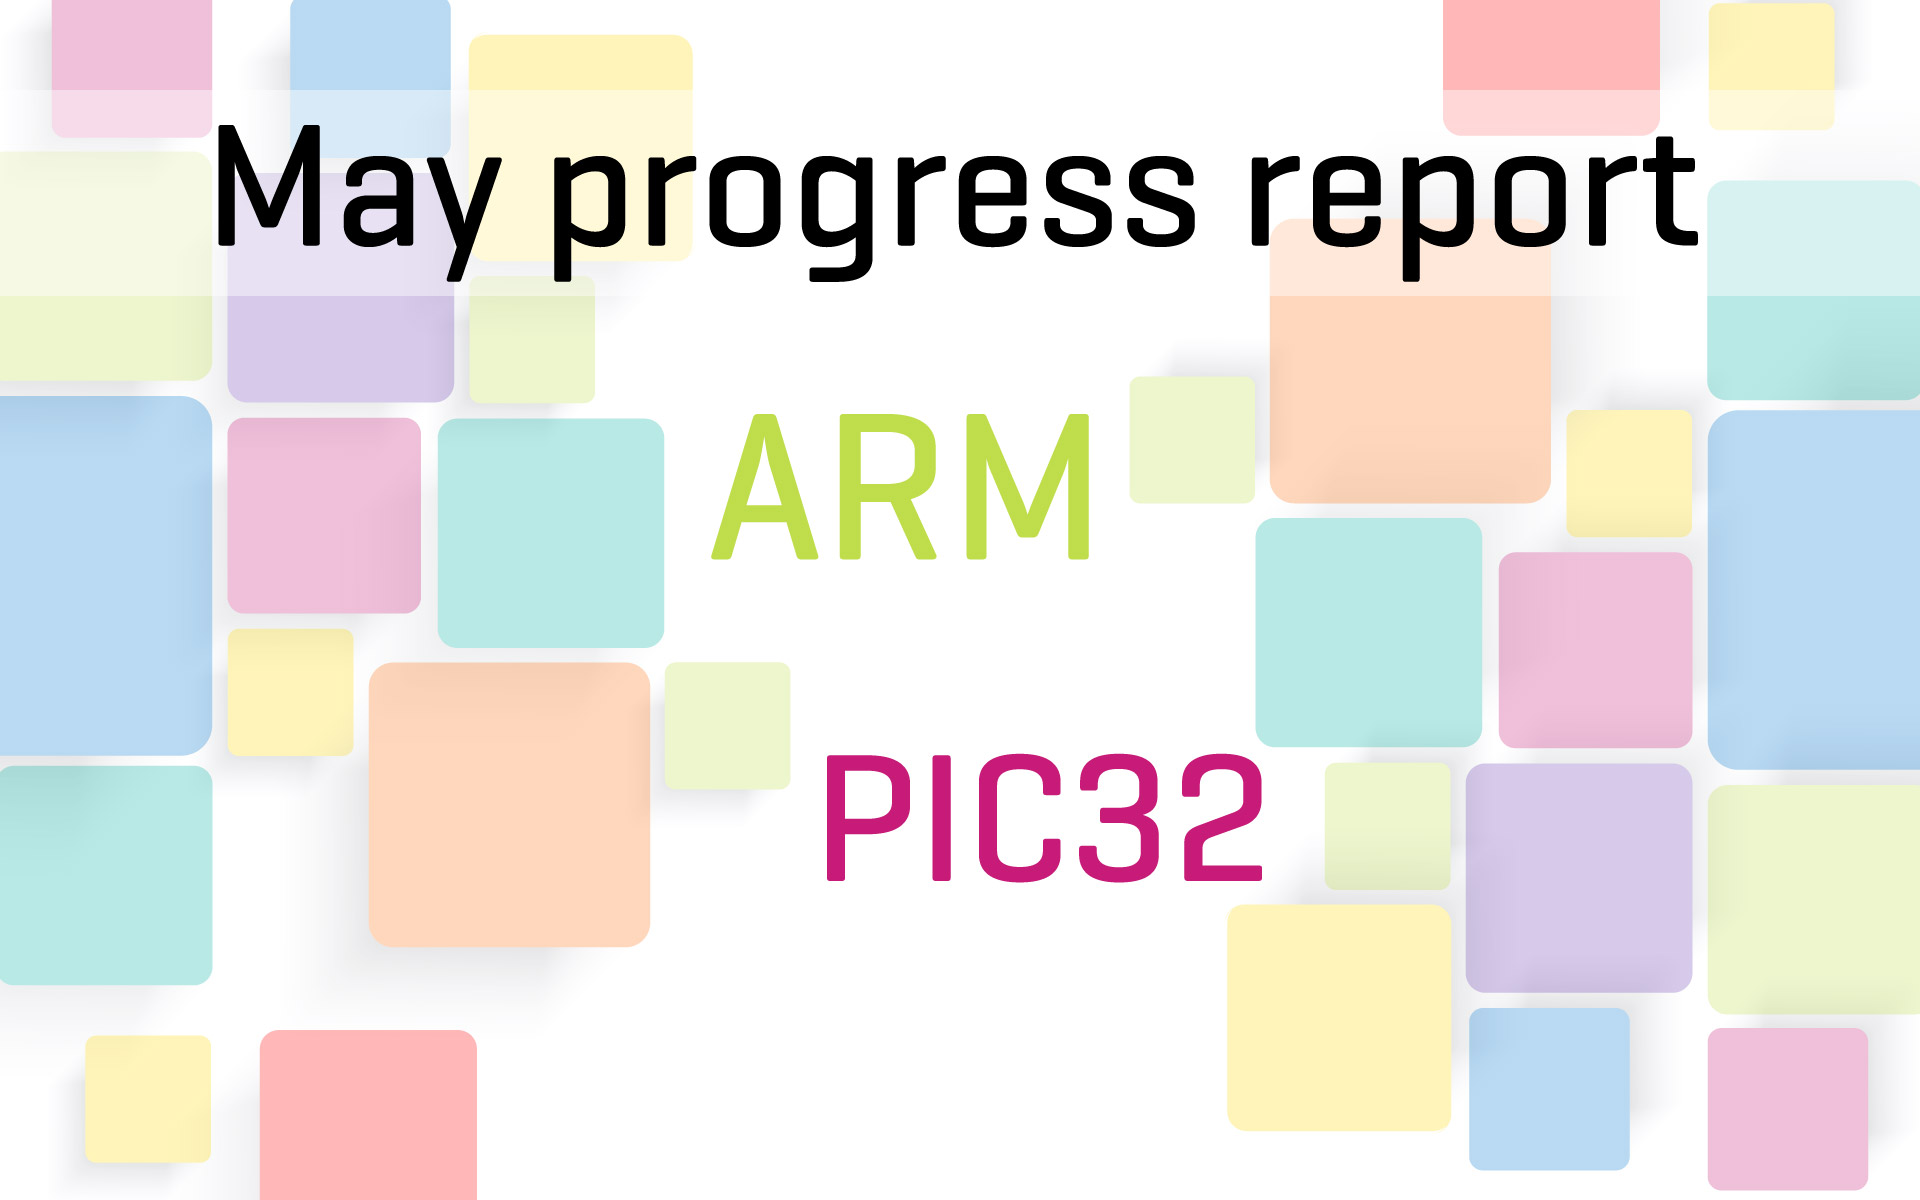 May progress report – Roadmap for ARM and PIC32 compilers